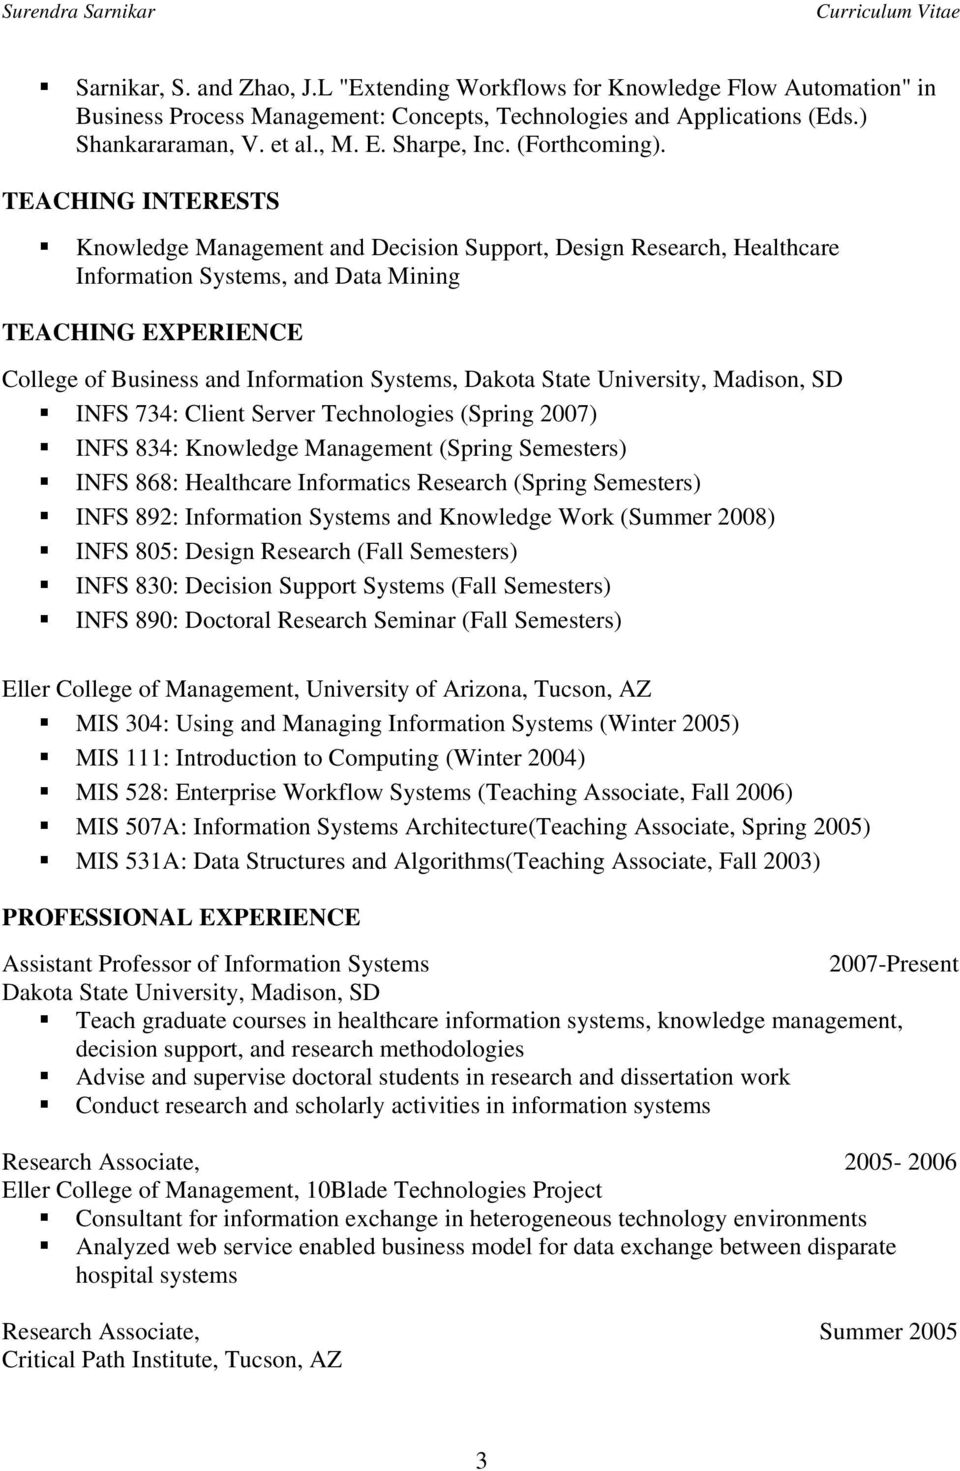 TEACHING INTERESTS Knowledge Management and Decision Support, Design Research, Healthcare Information Systems, and Data Mining TEACHING EXPERIENCE College of Business and Information Systems, Dakota